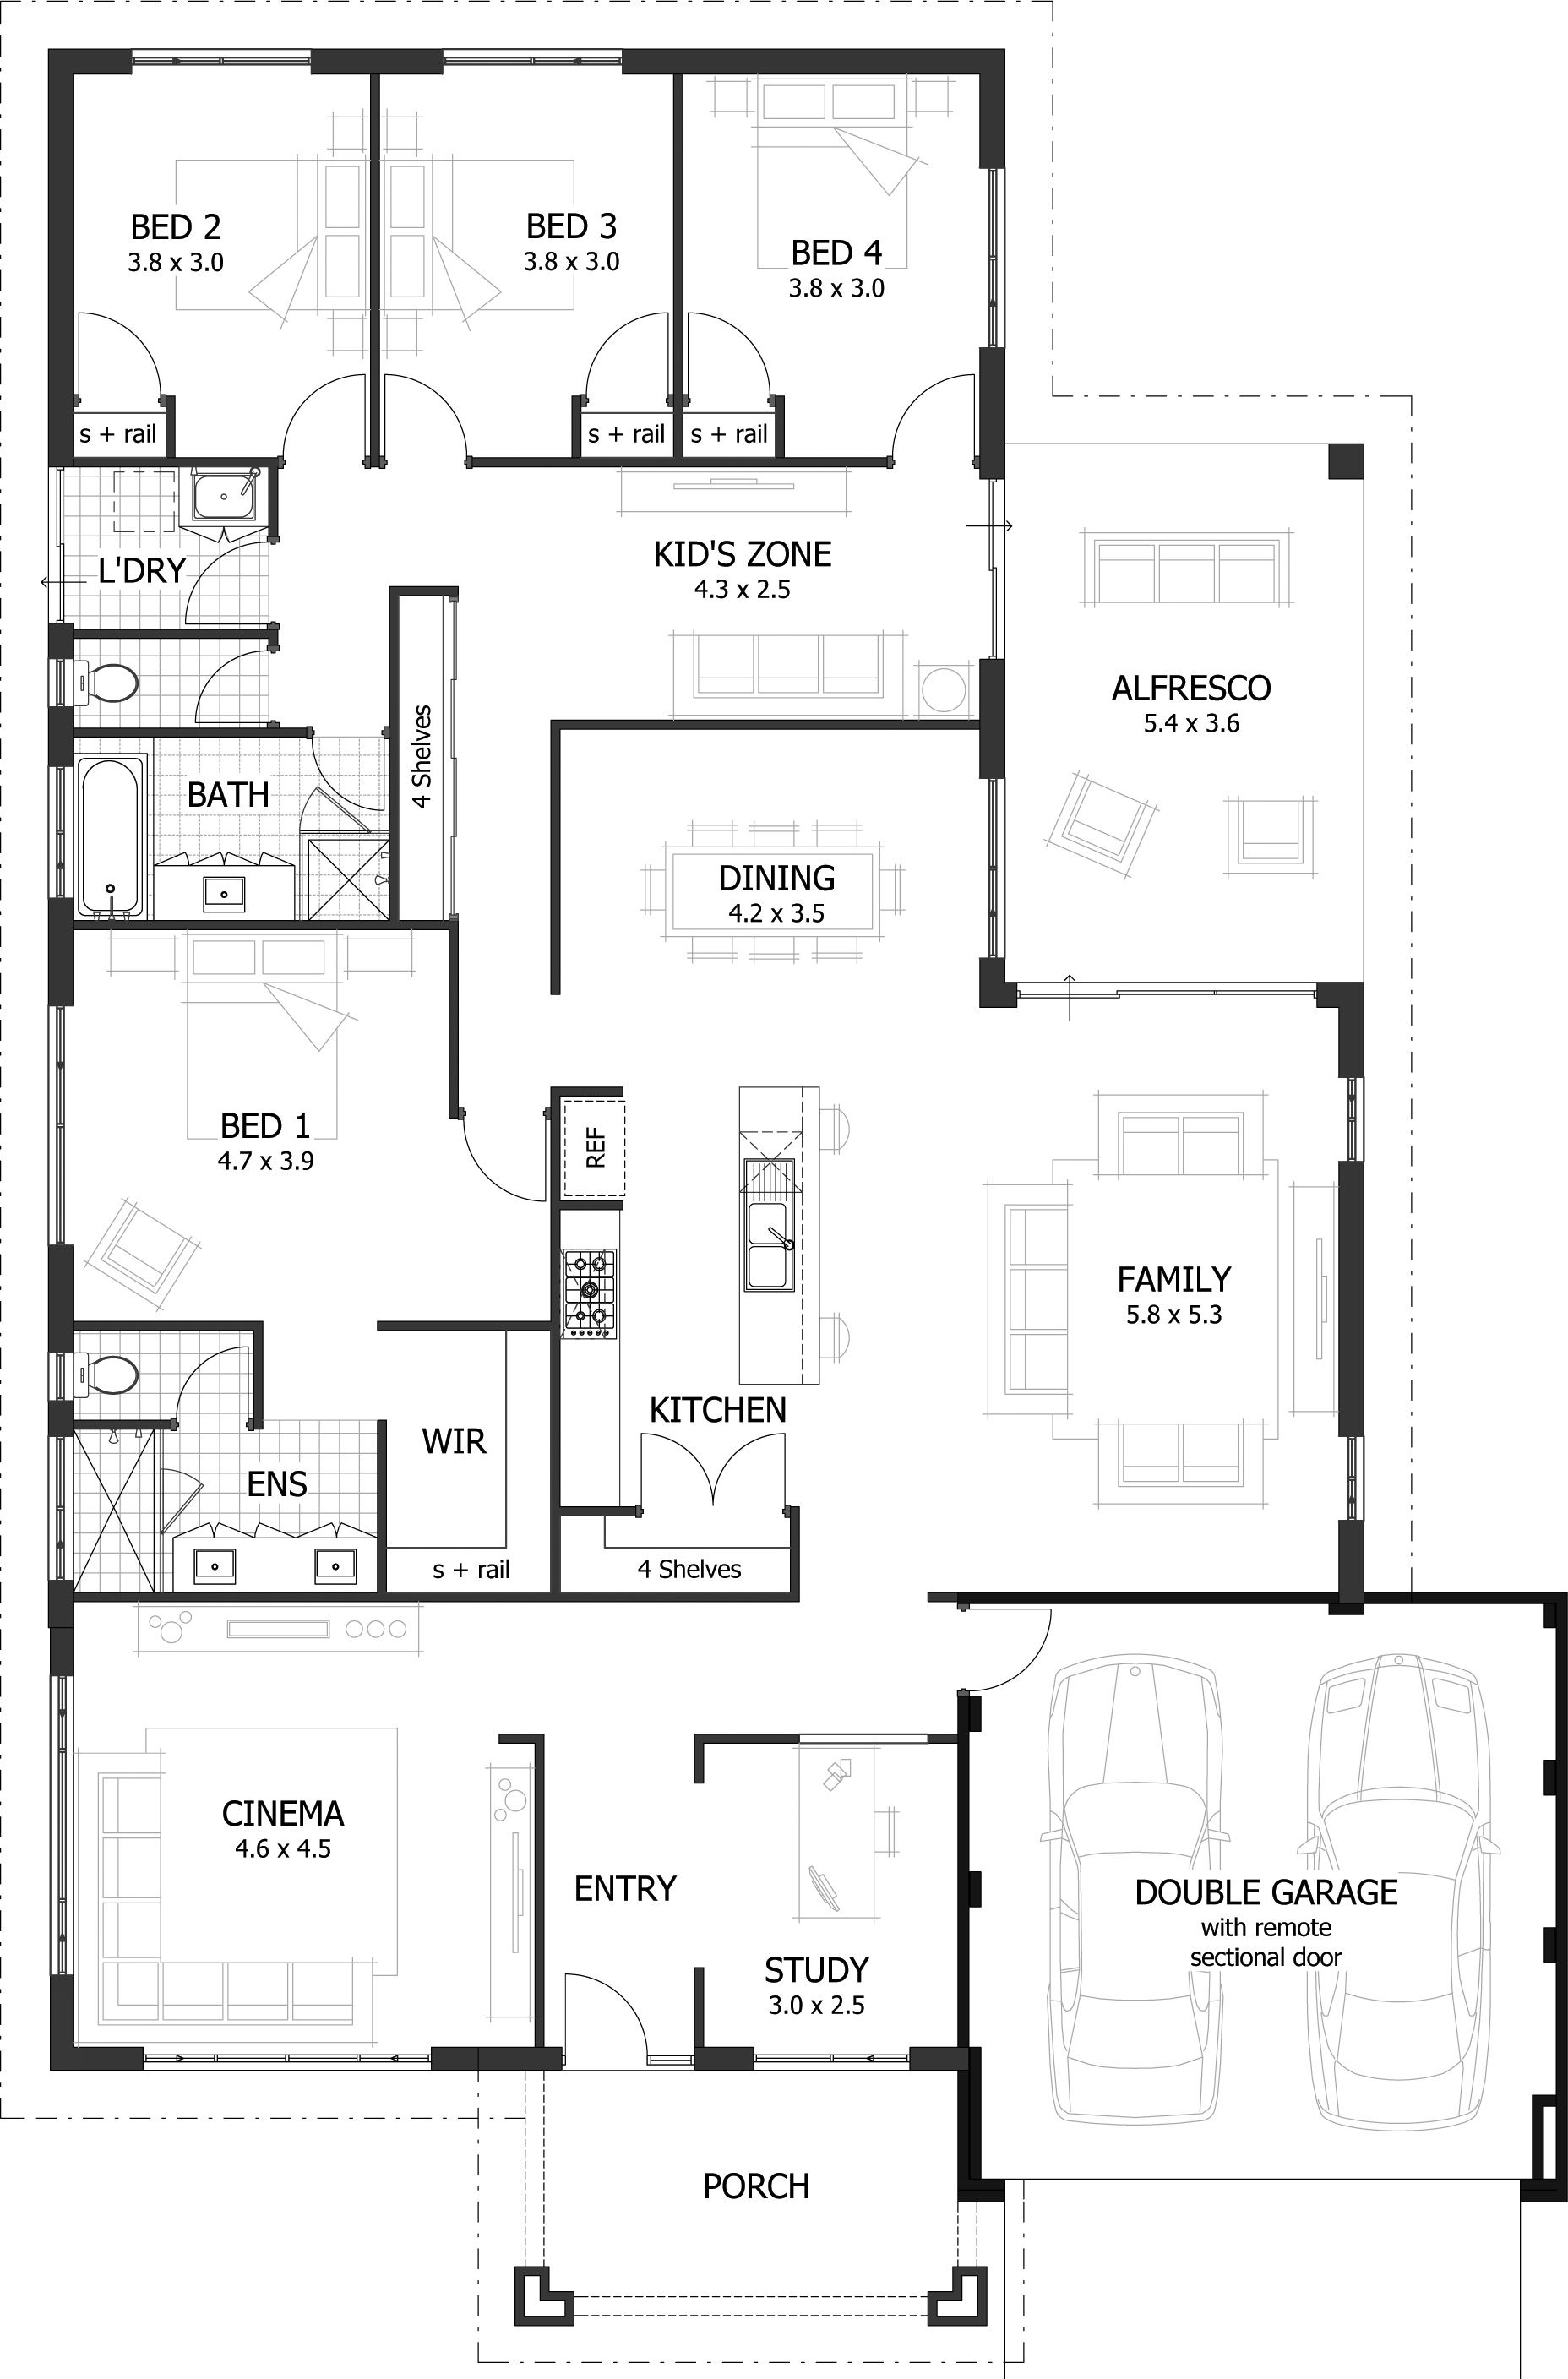 4 Bedroom House Plans Home Designs Celebration Homes X House